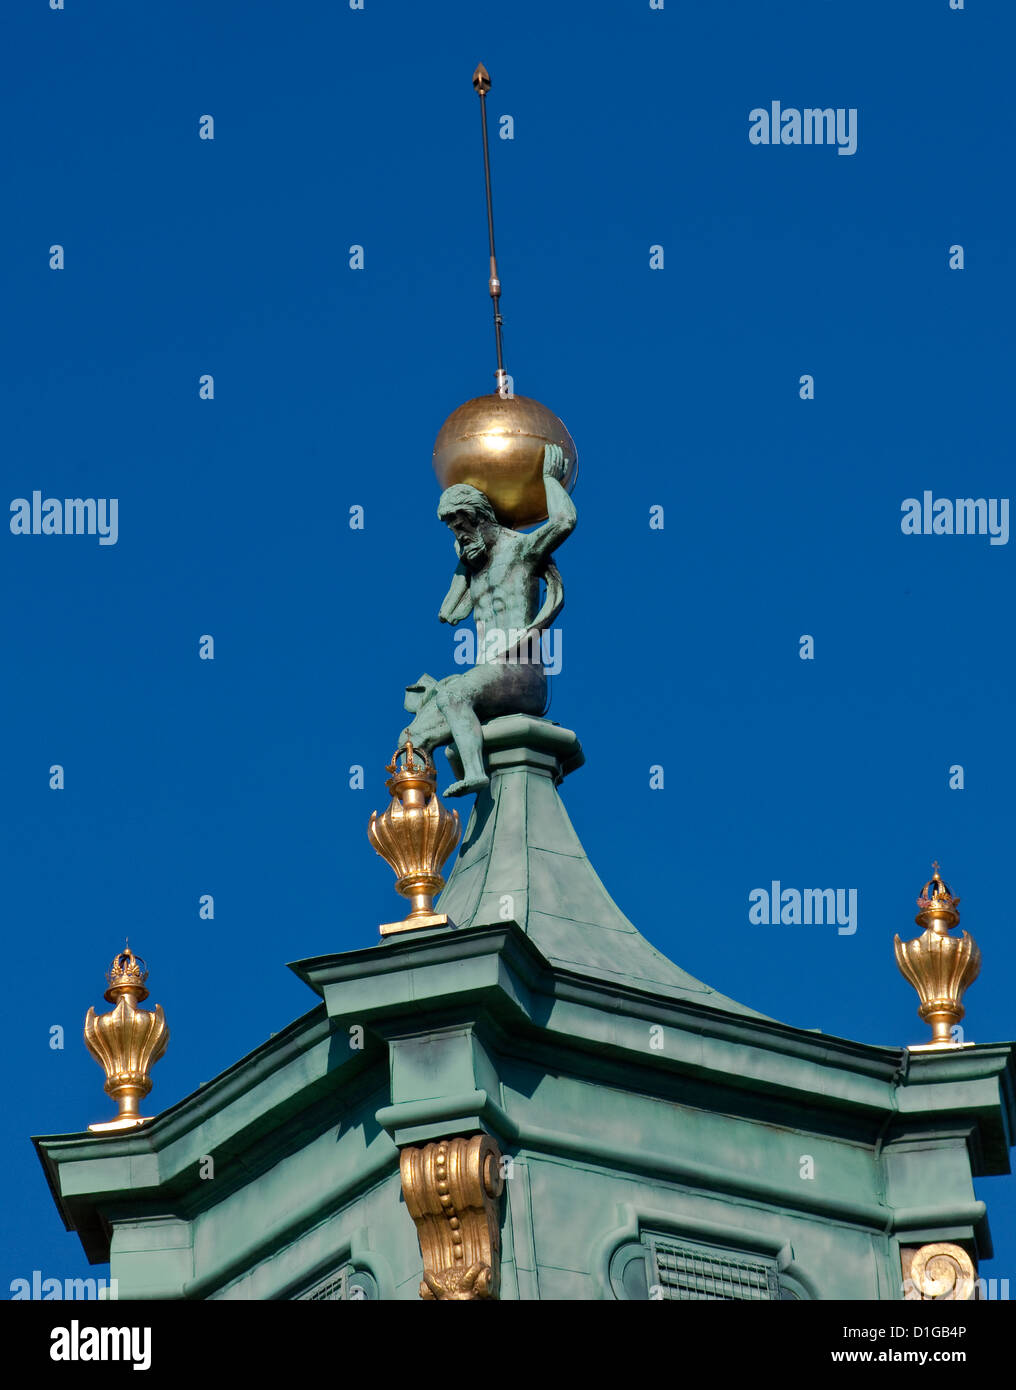 Figure of Atlas holding the celestial sphere at baroque spire on tower at Wilanów Palace in Warsaw, Poland - Stock Image